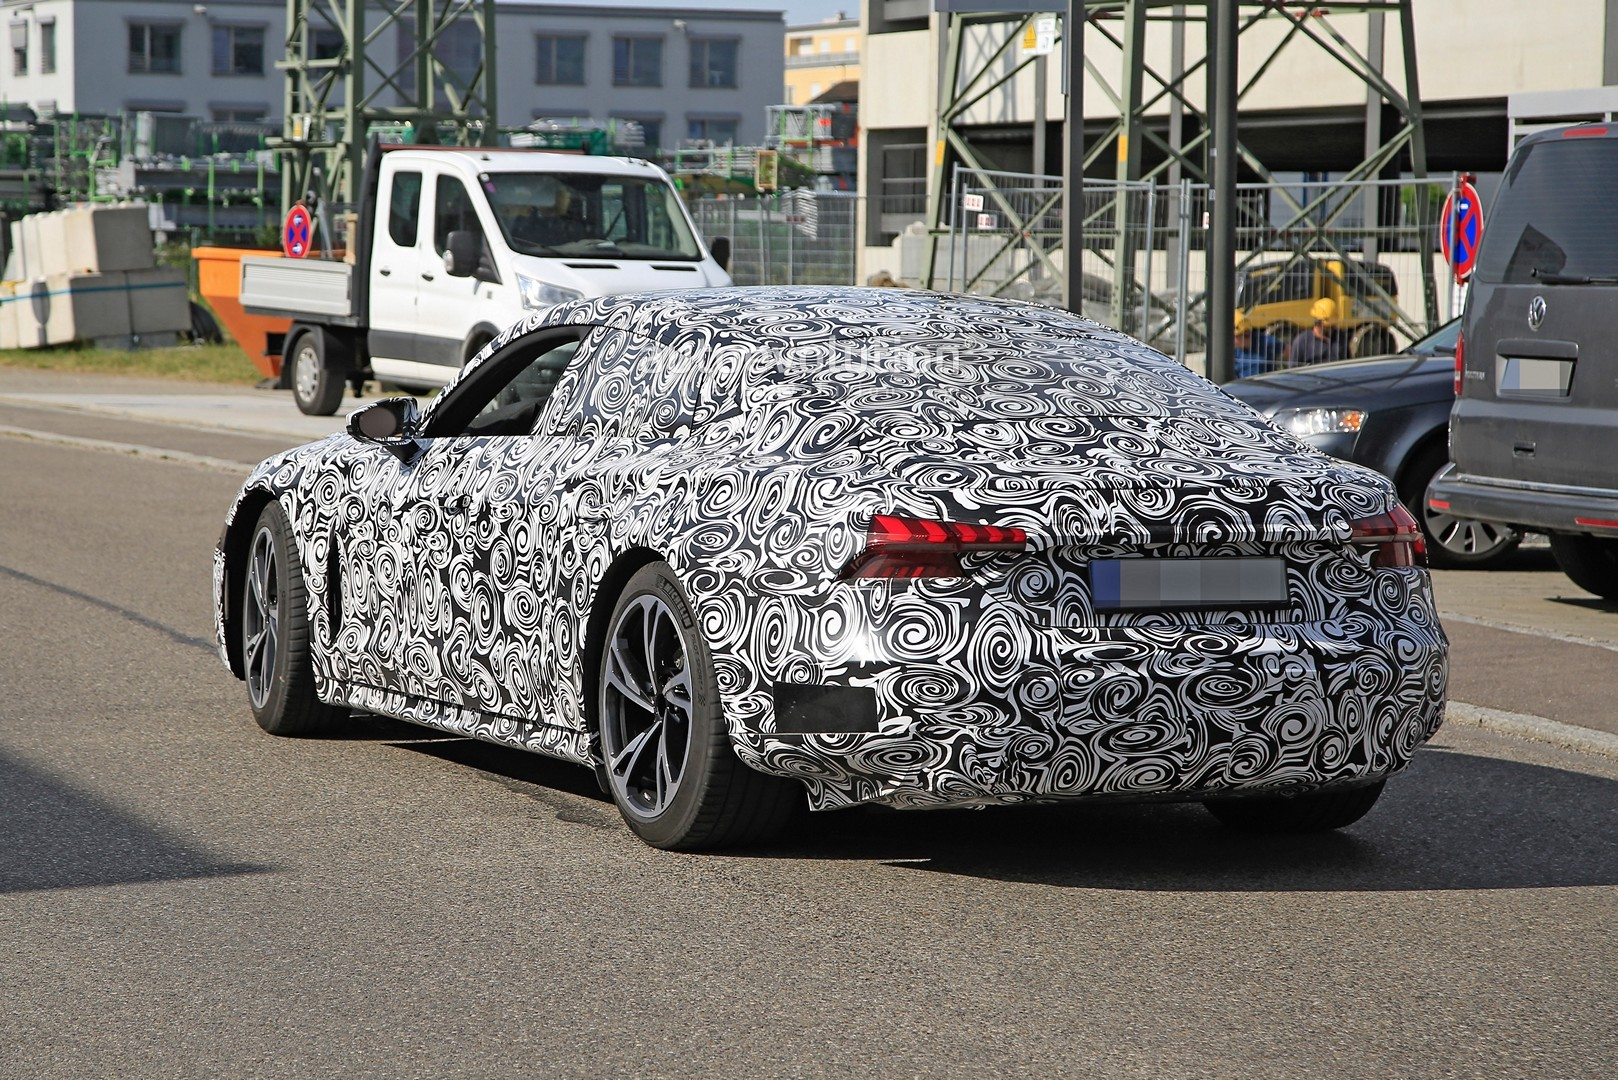 2021 audi e-tron gt spotted, $100,000 ev getting ready for